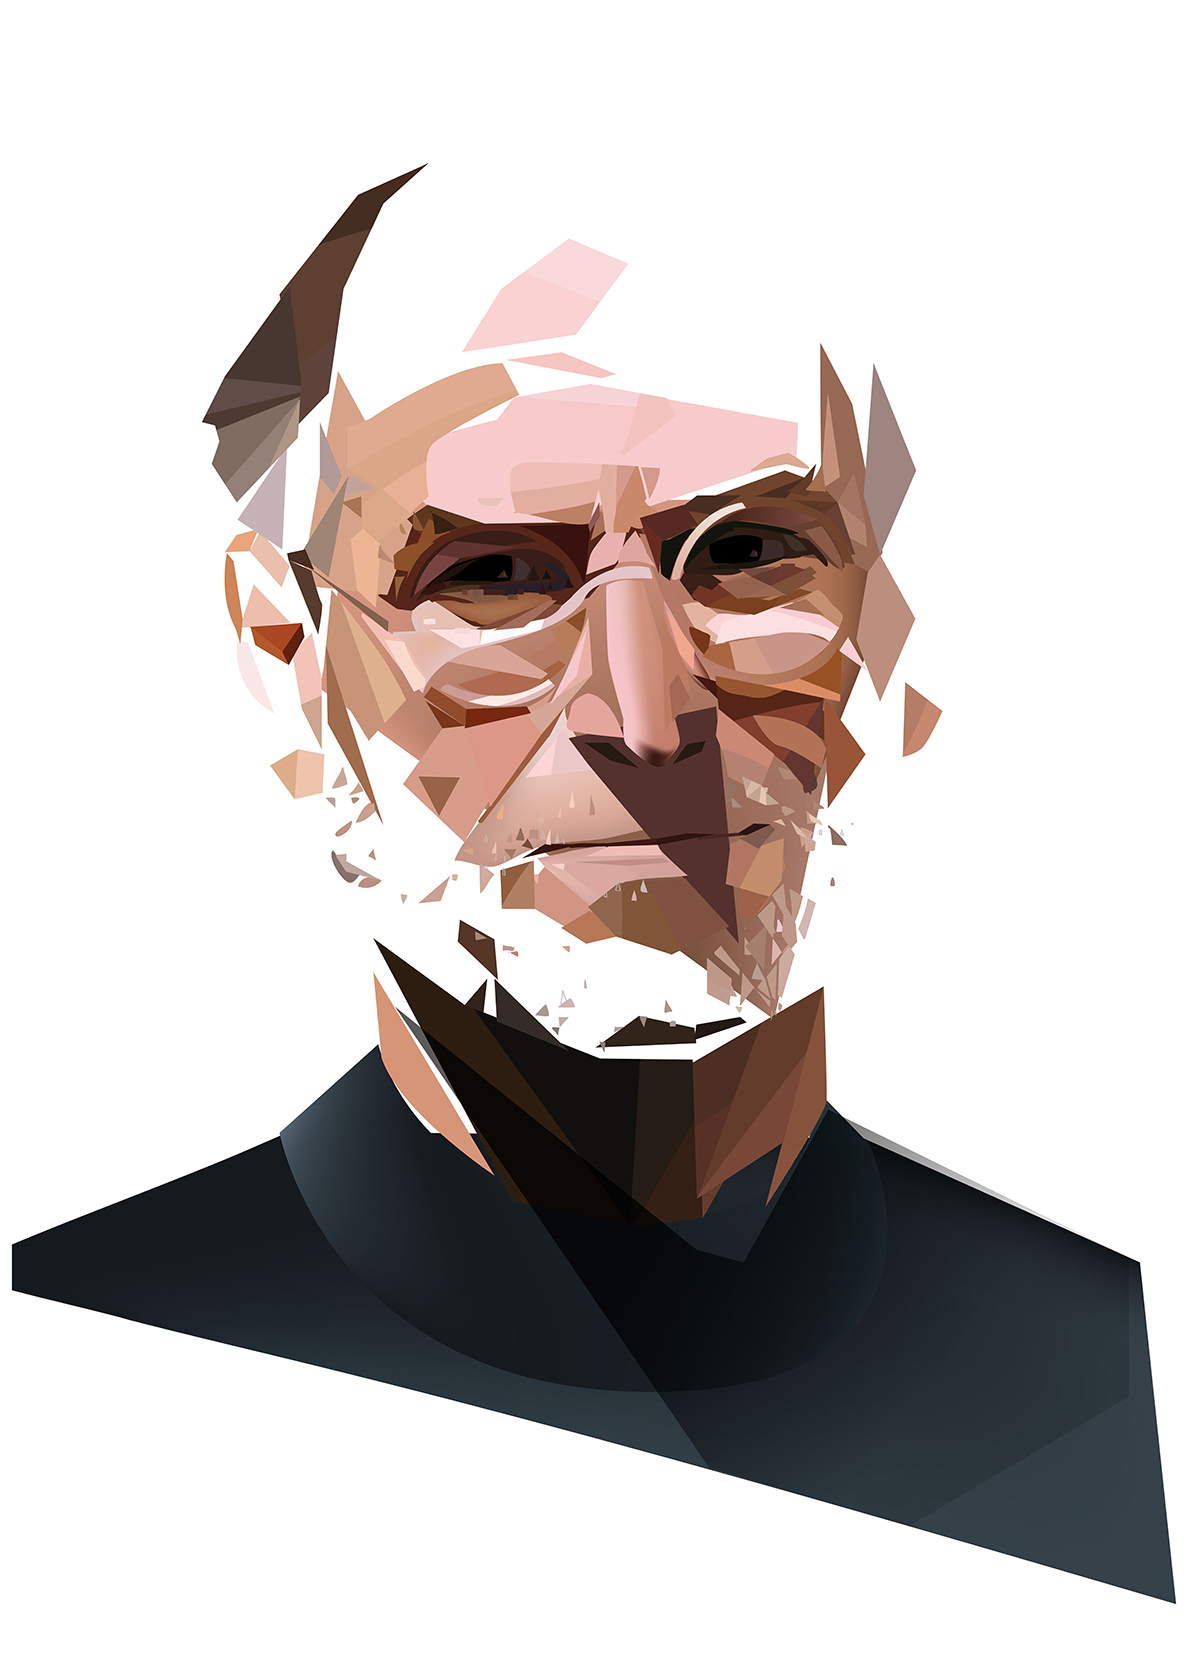 Steve Jobs - Stefano Marvulli